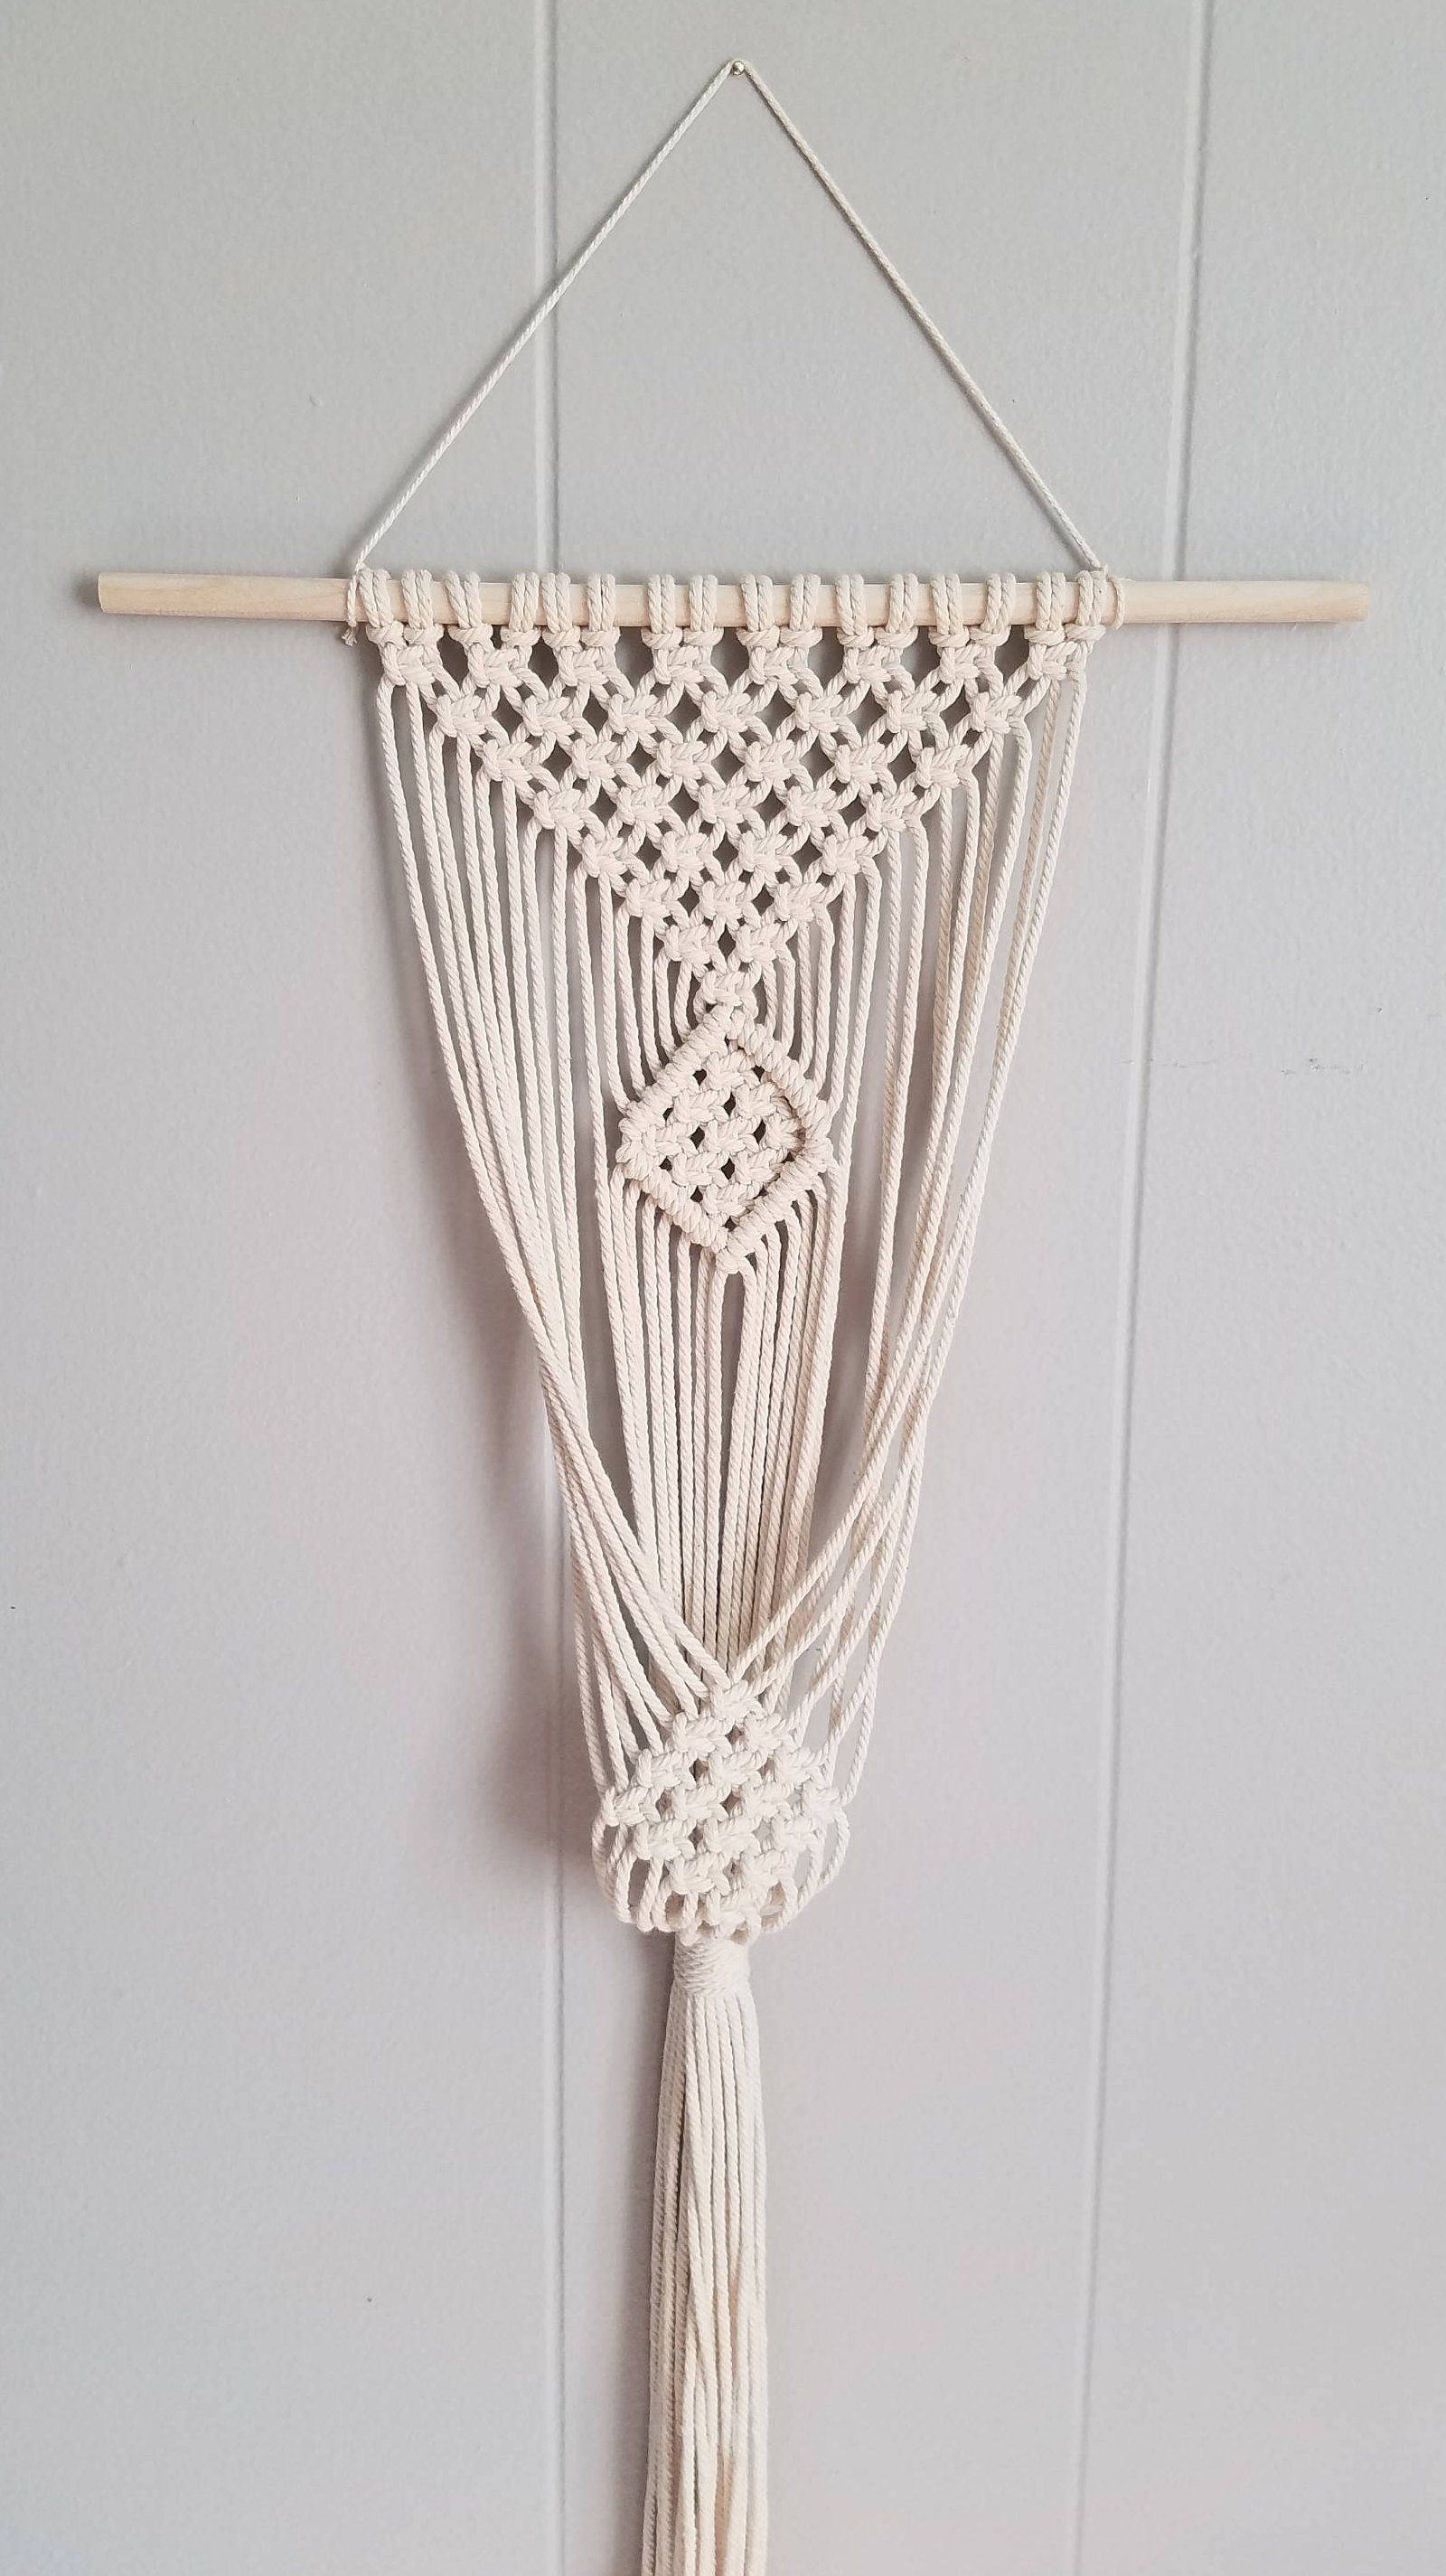 clove hitch single plant hanger macrame plant wall on wall hanger id=29521